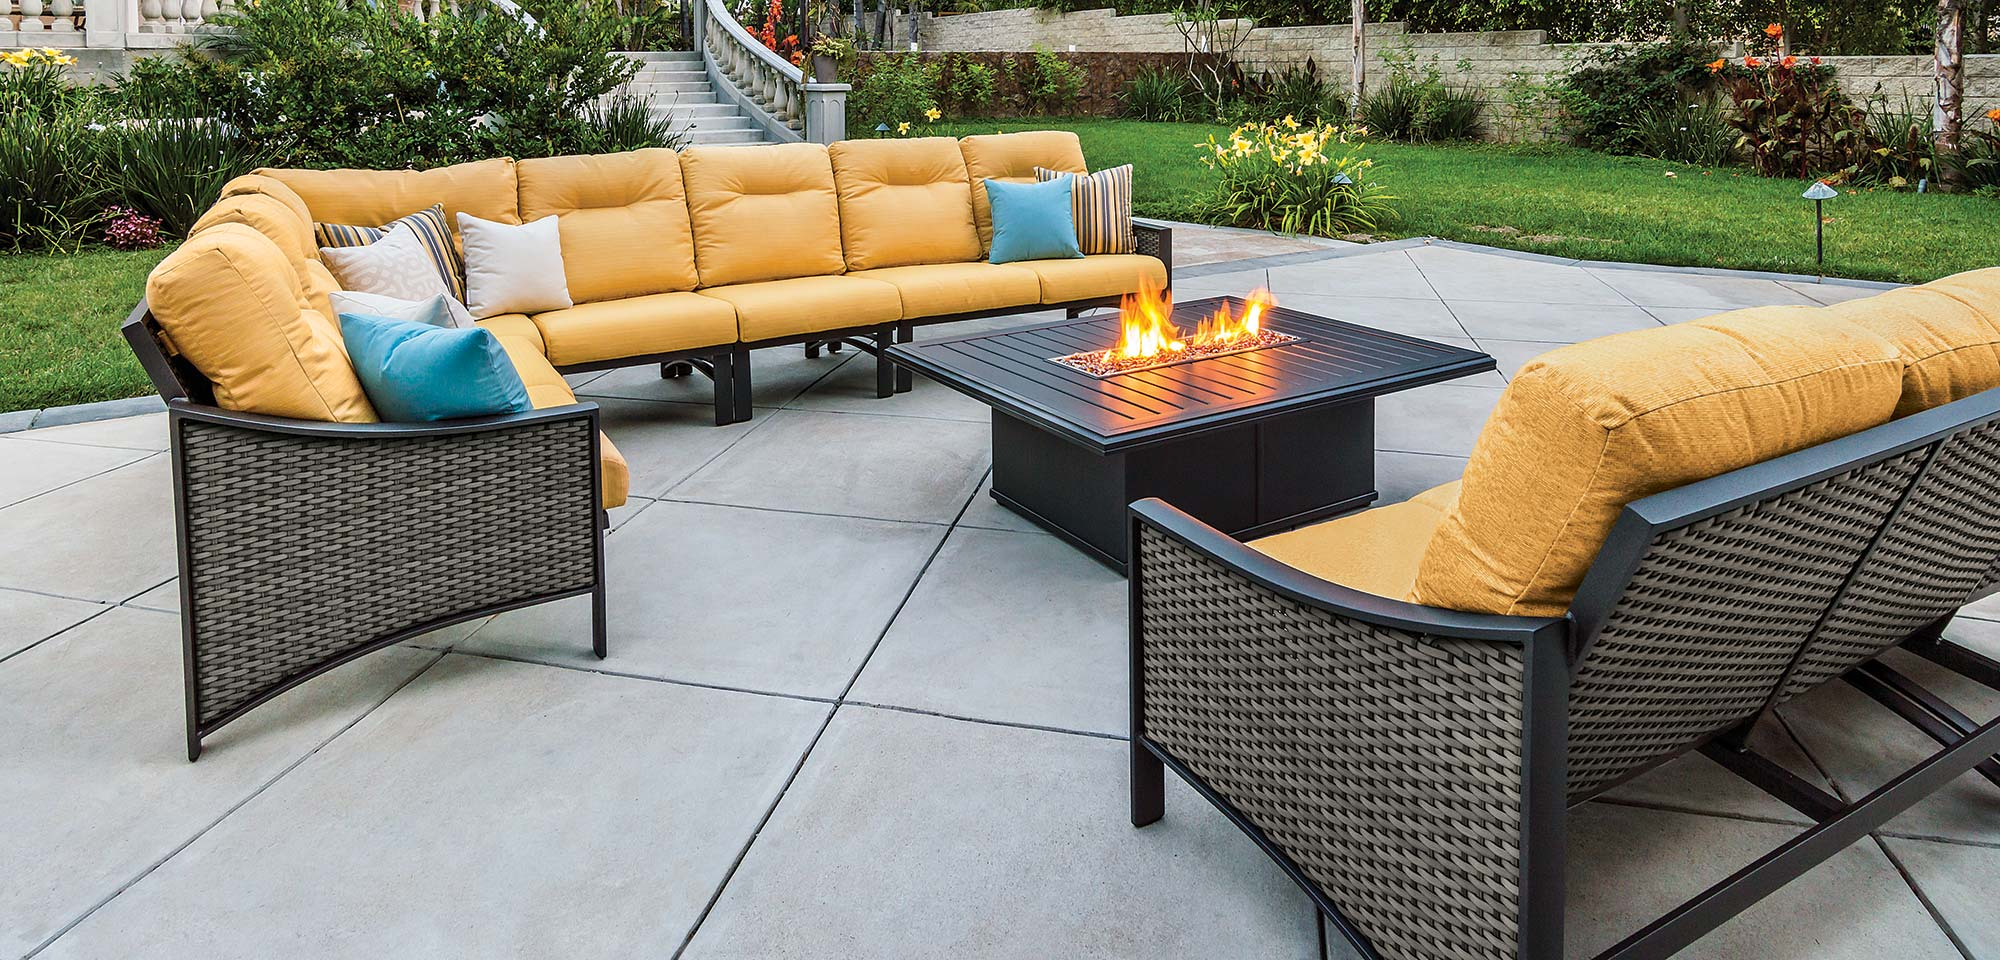 seat patio biscayne showrrom hanamint image deep result outdoor group furniture galleries homecrest product ontario for aluminum seating cast gallery